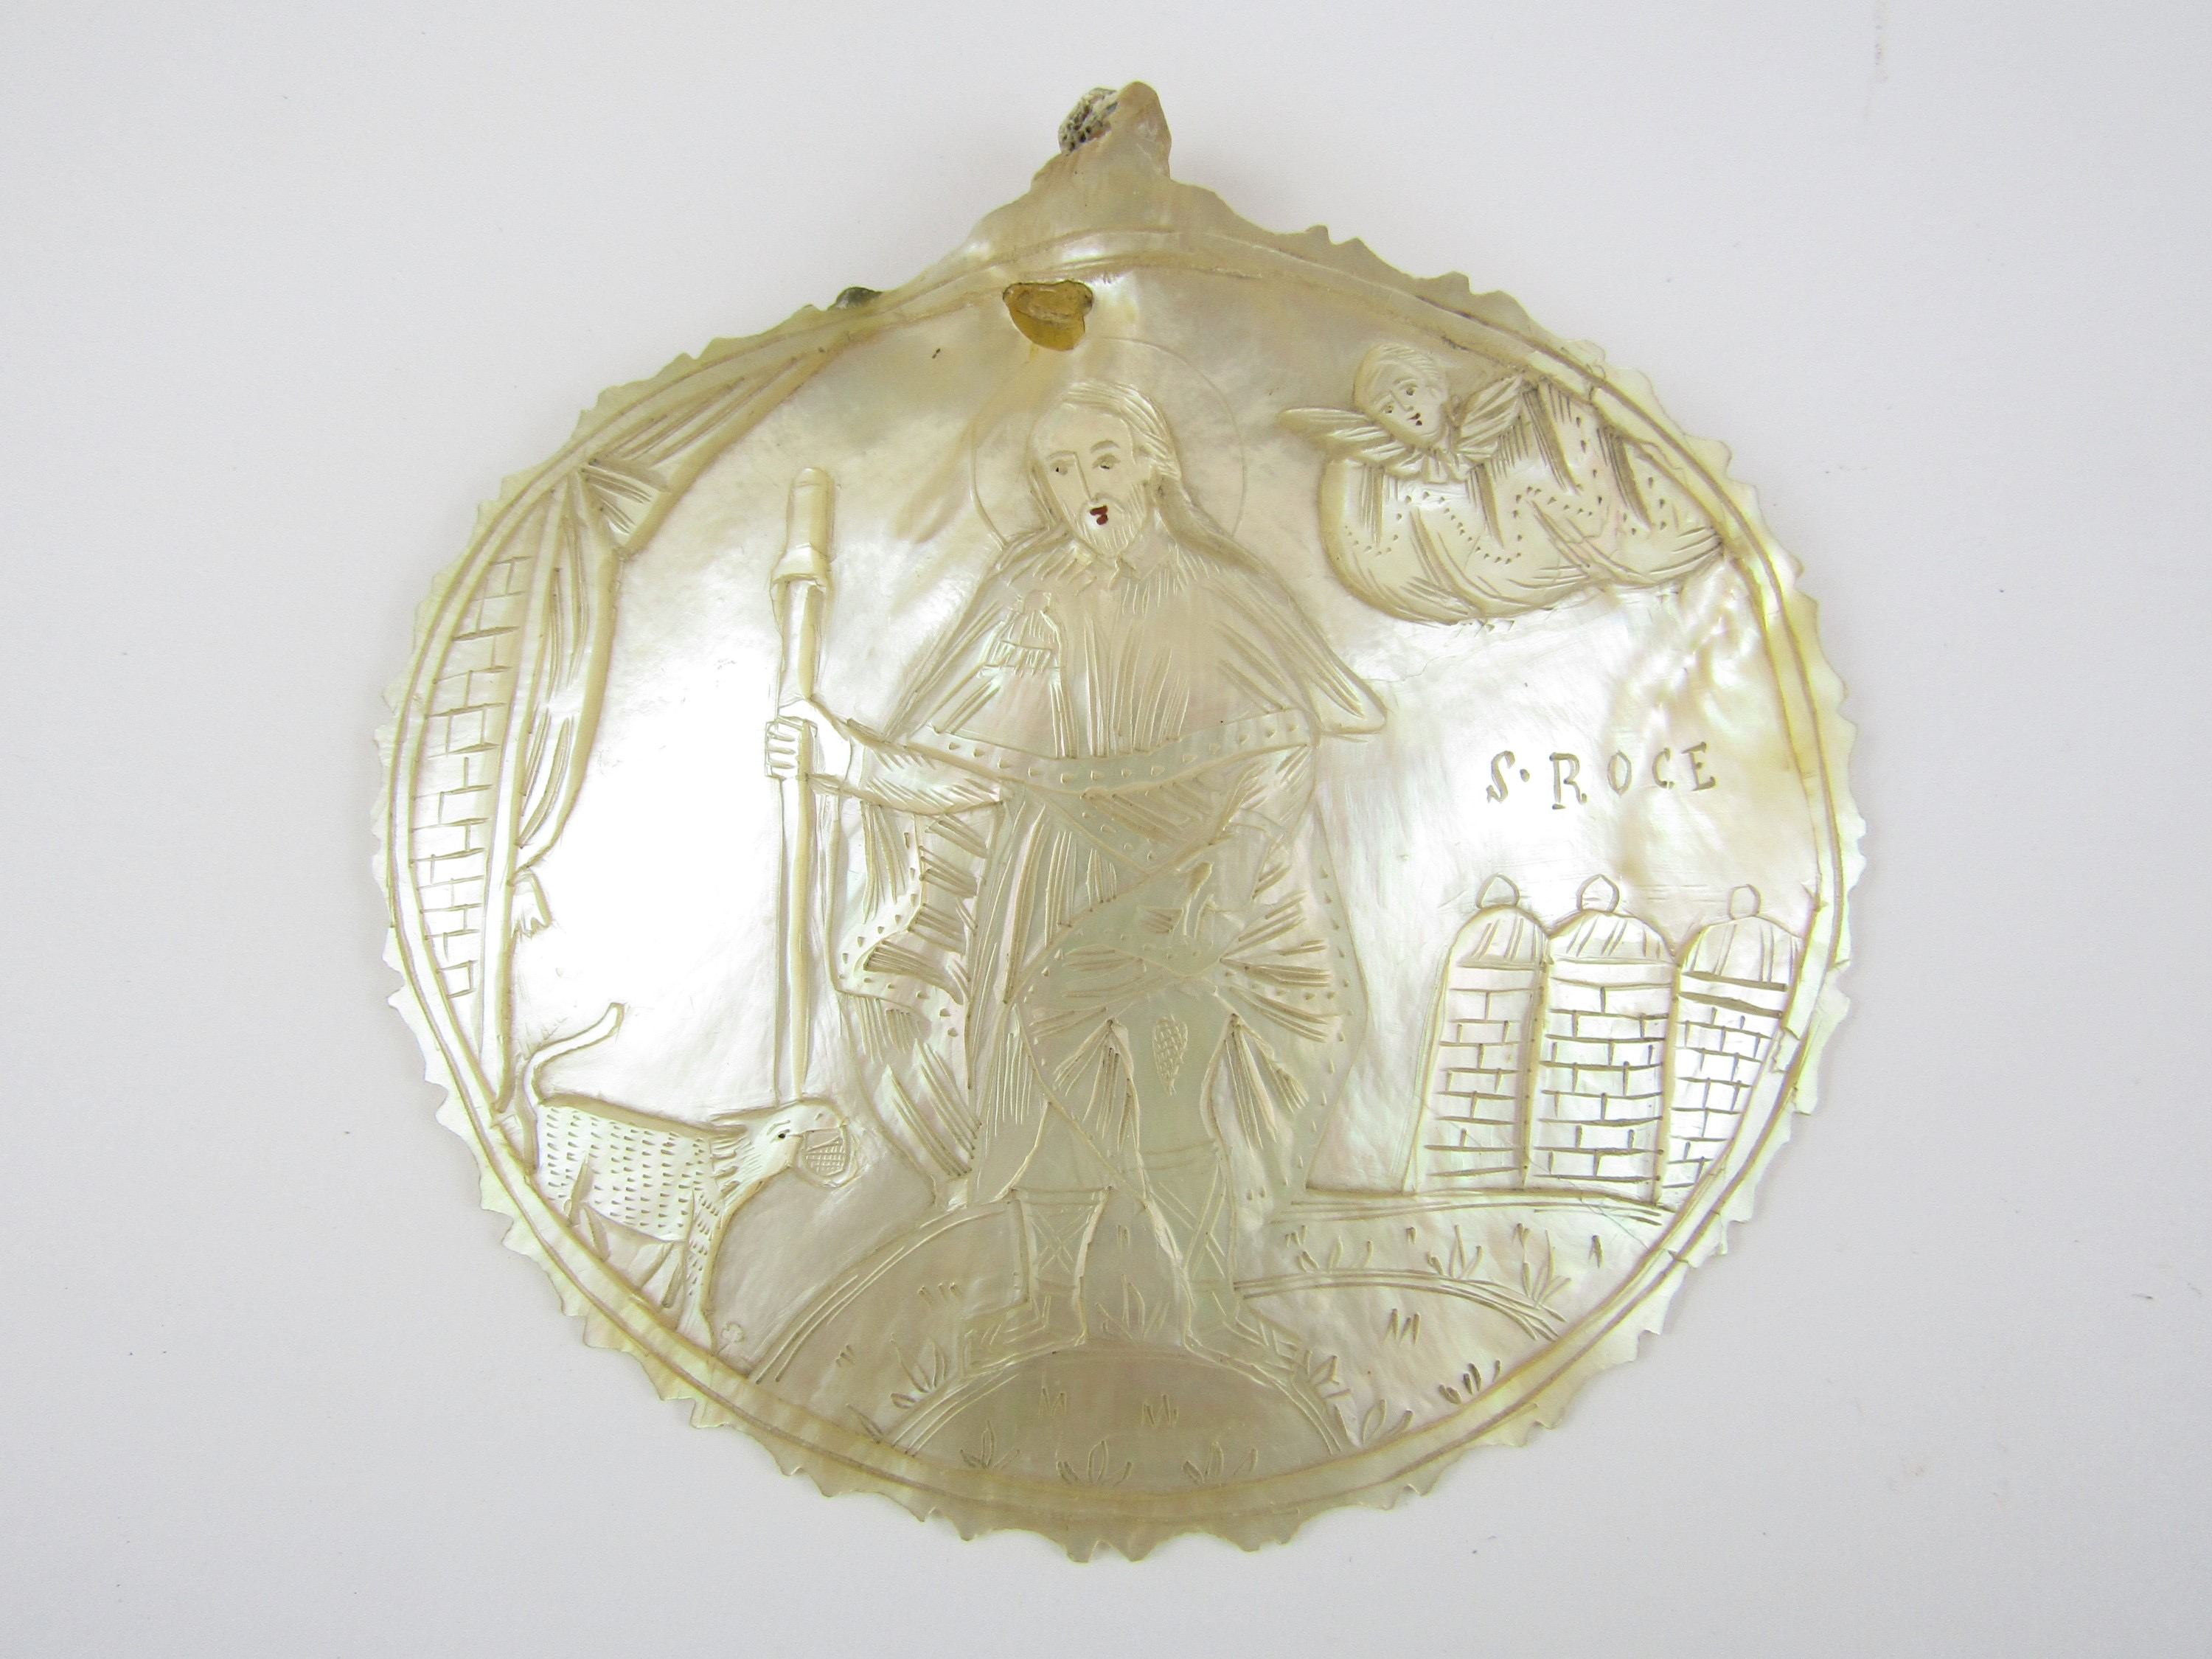 Lot 57 - A religious engraved mother of pearl plaque